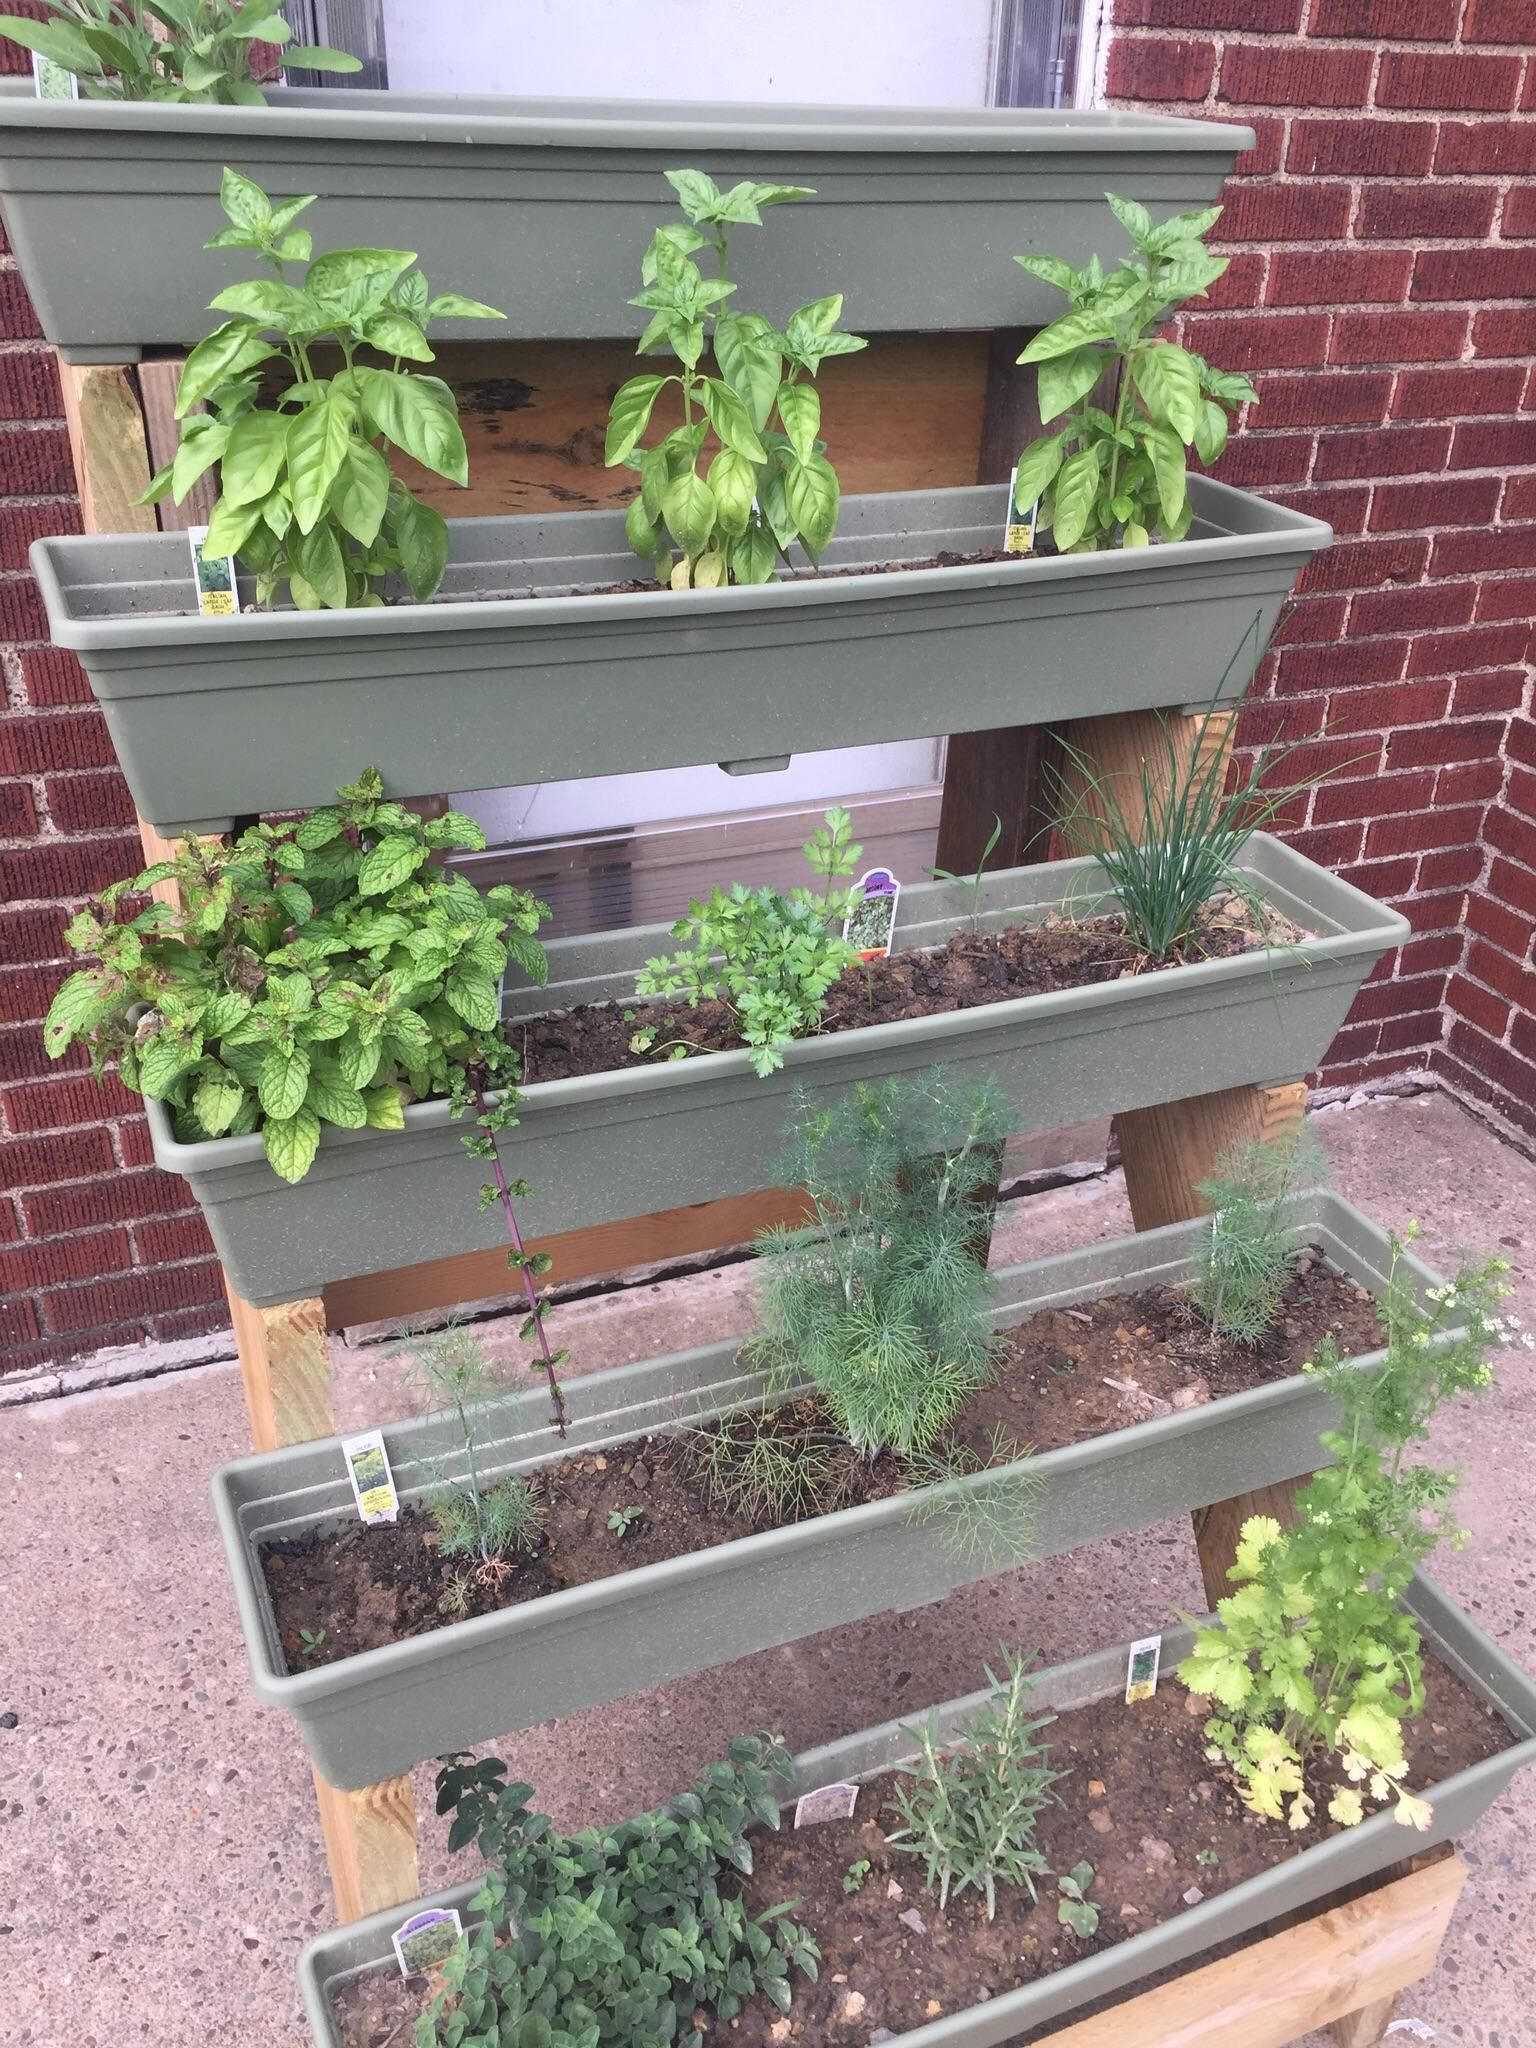 Planter For Herbs Update Turned The Homemade Multilevel Planter Into An Herb Garden